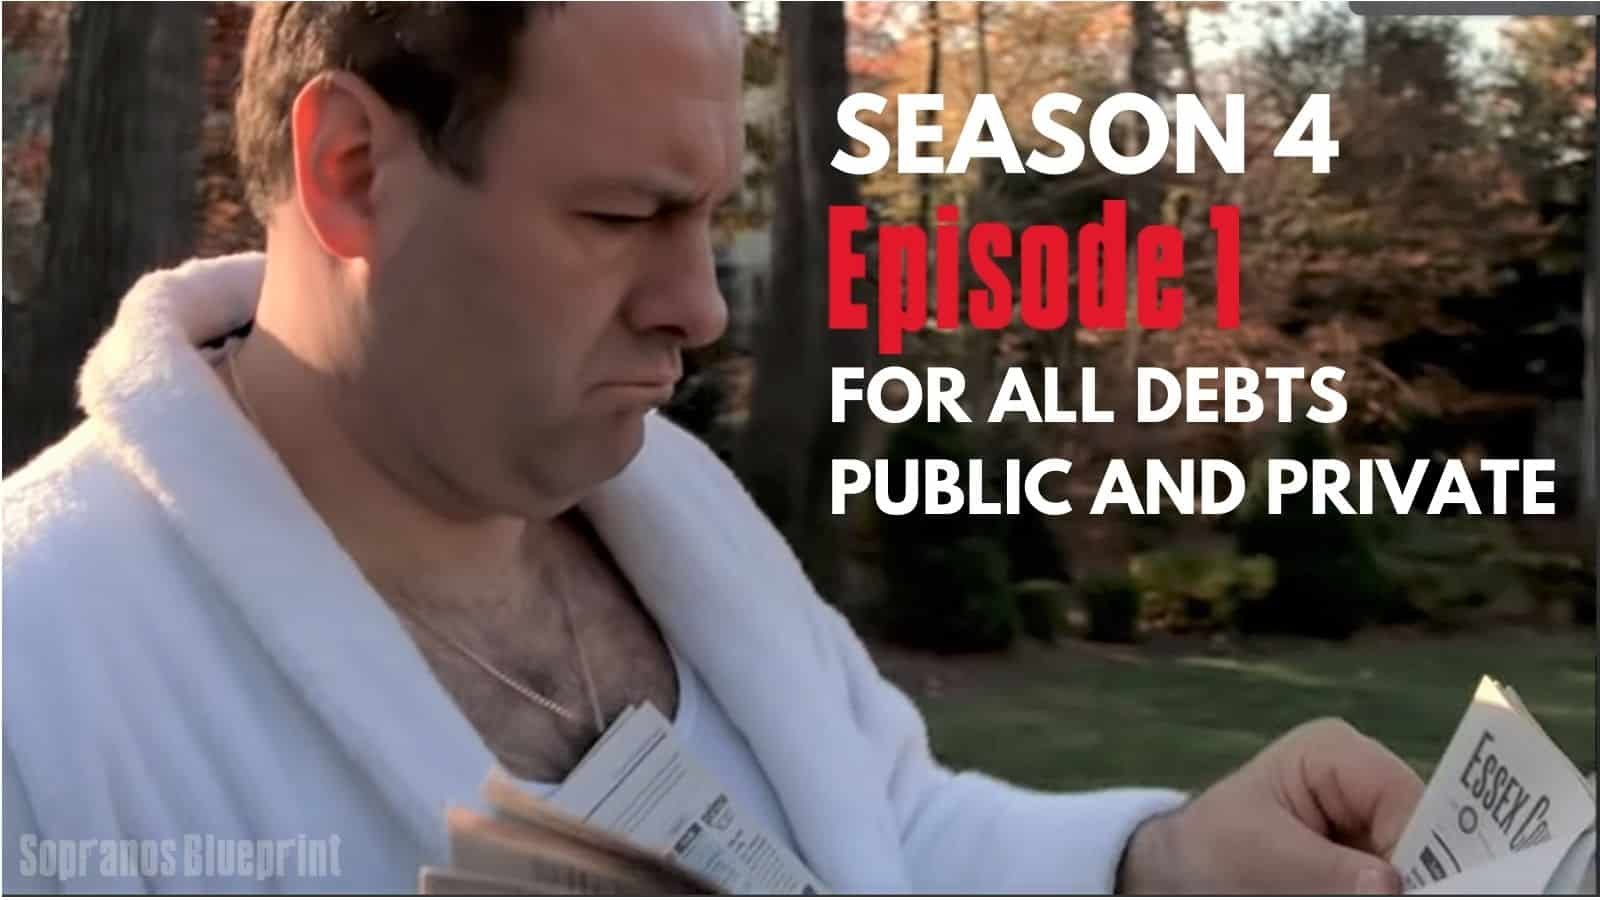 tony soprano is at the end of his driveway grabbing his newspaper and glancing at one of the headlines.